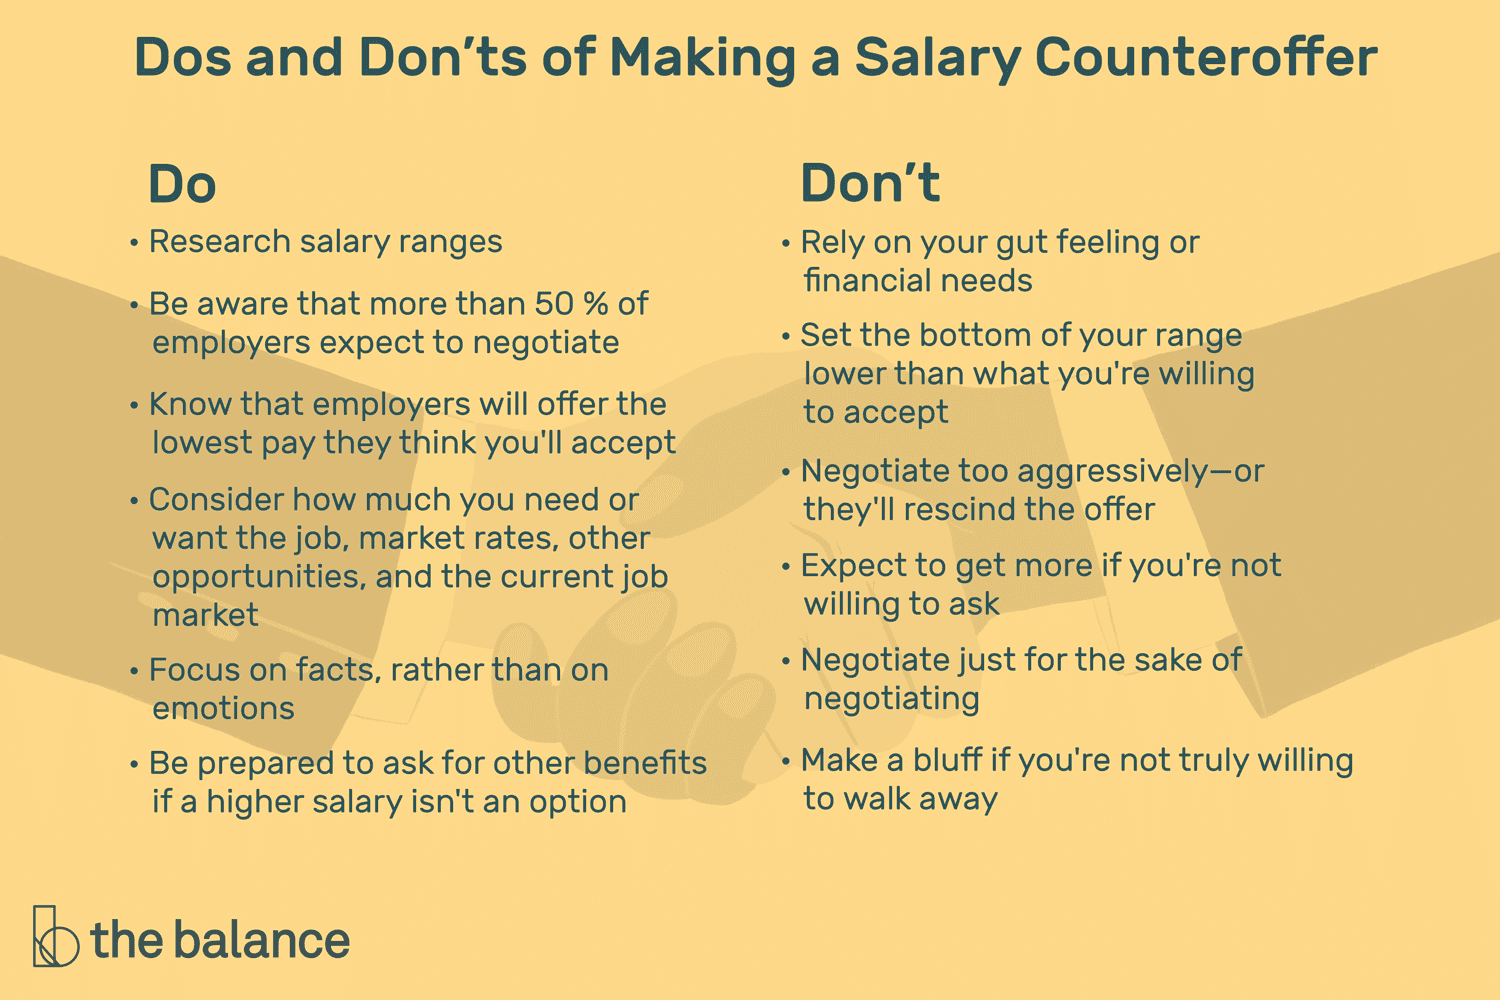 how to negotiate a salary counter offer for a job